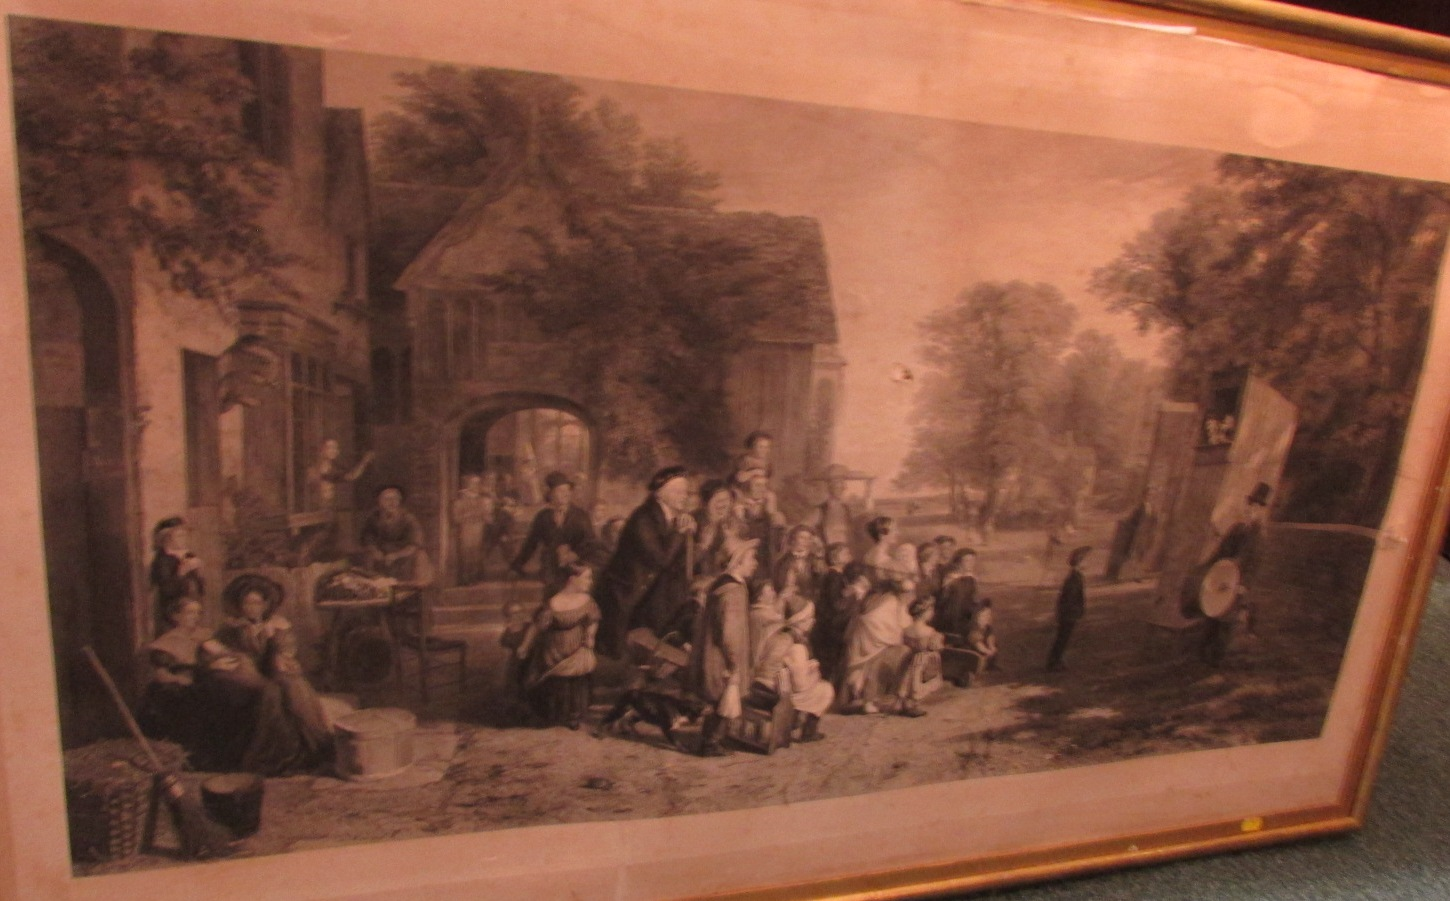 Lot 58 - 19th century engraving depicting a Punch and Judy show with a group of onlookers (65cm x 121cm) in a